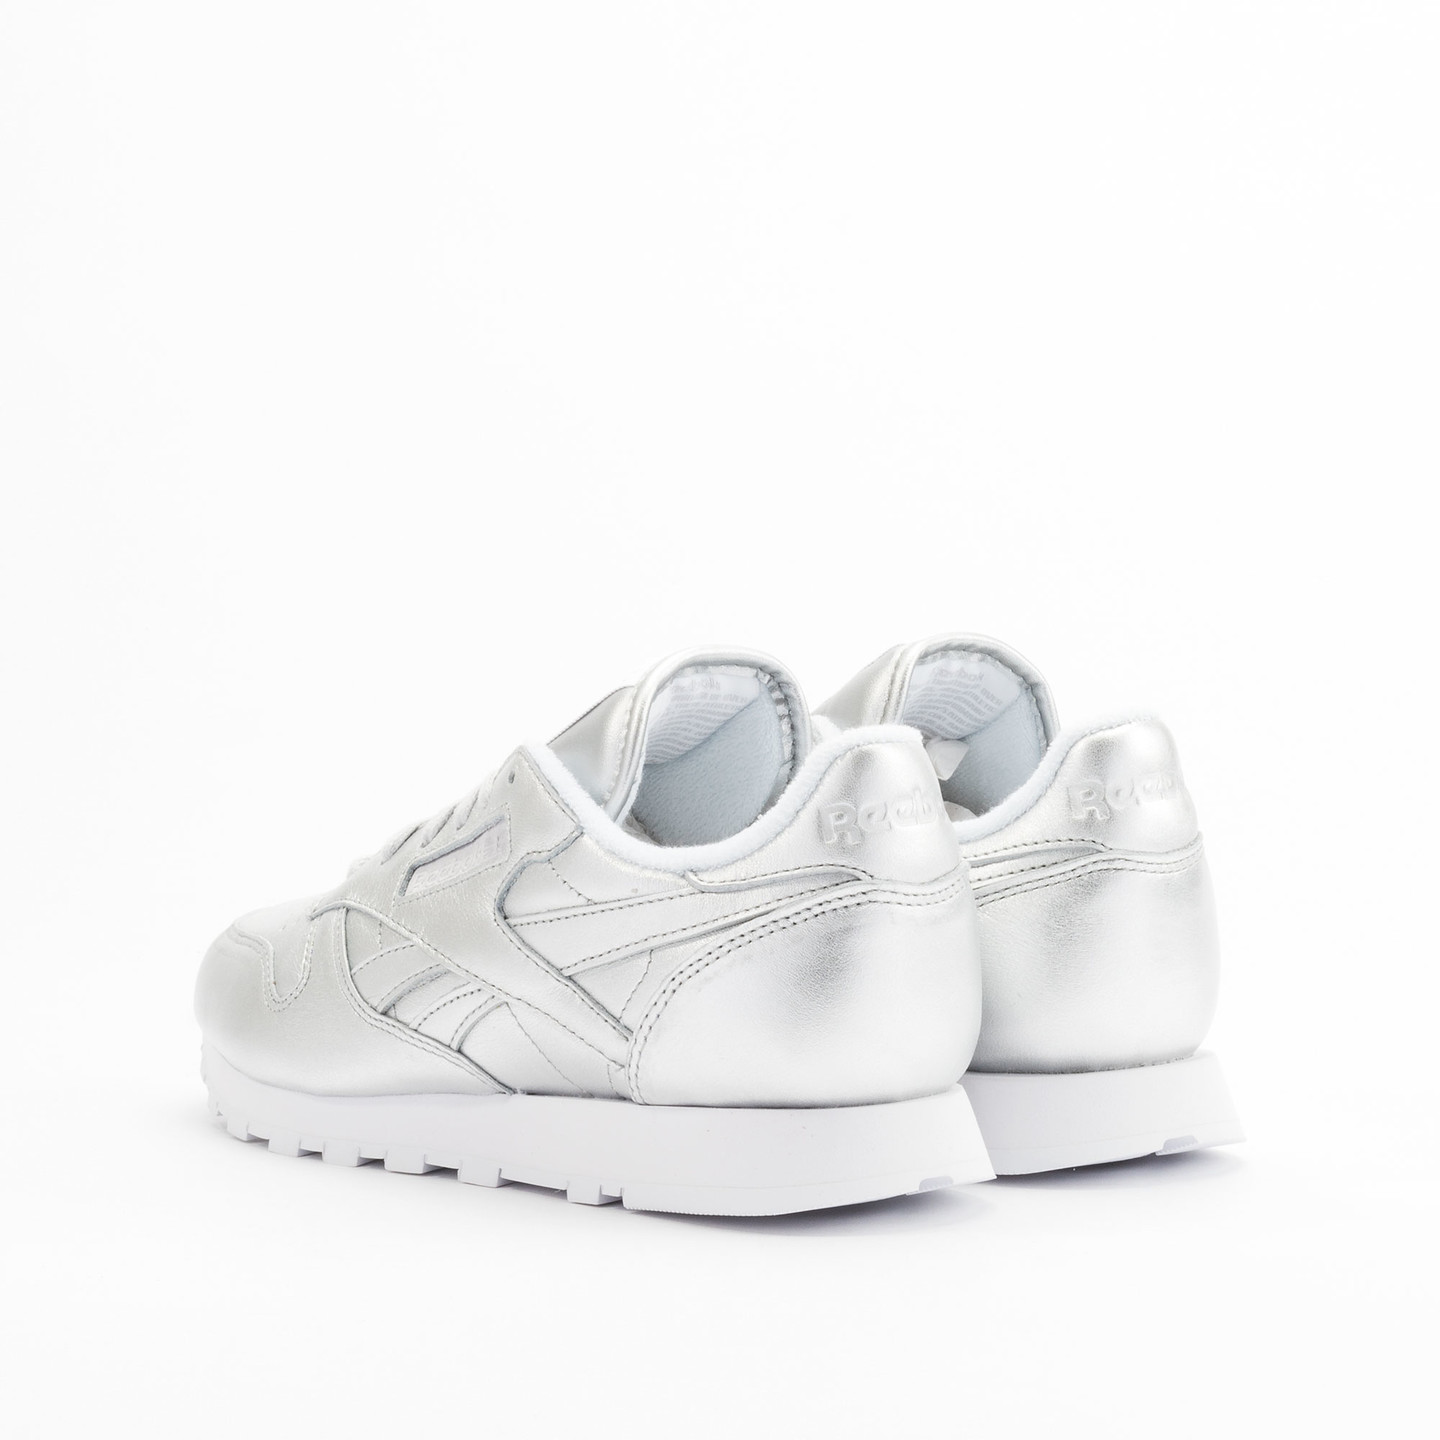 Reebok Classic Leather Spirit Presence Silver / White V62700-38